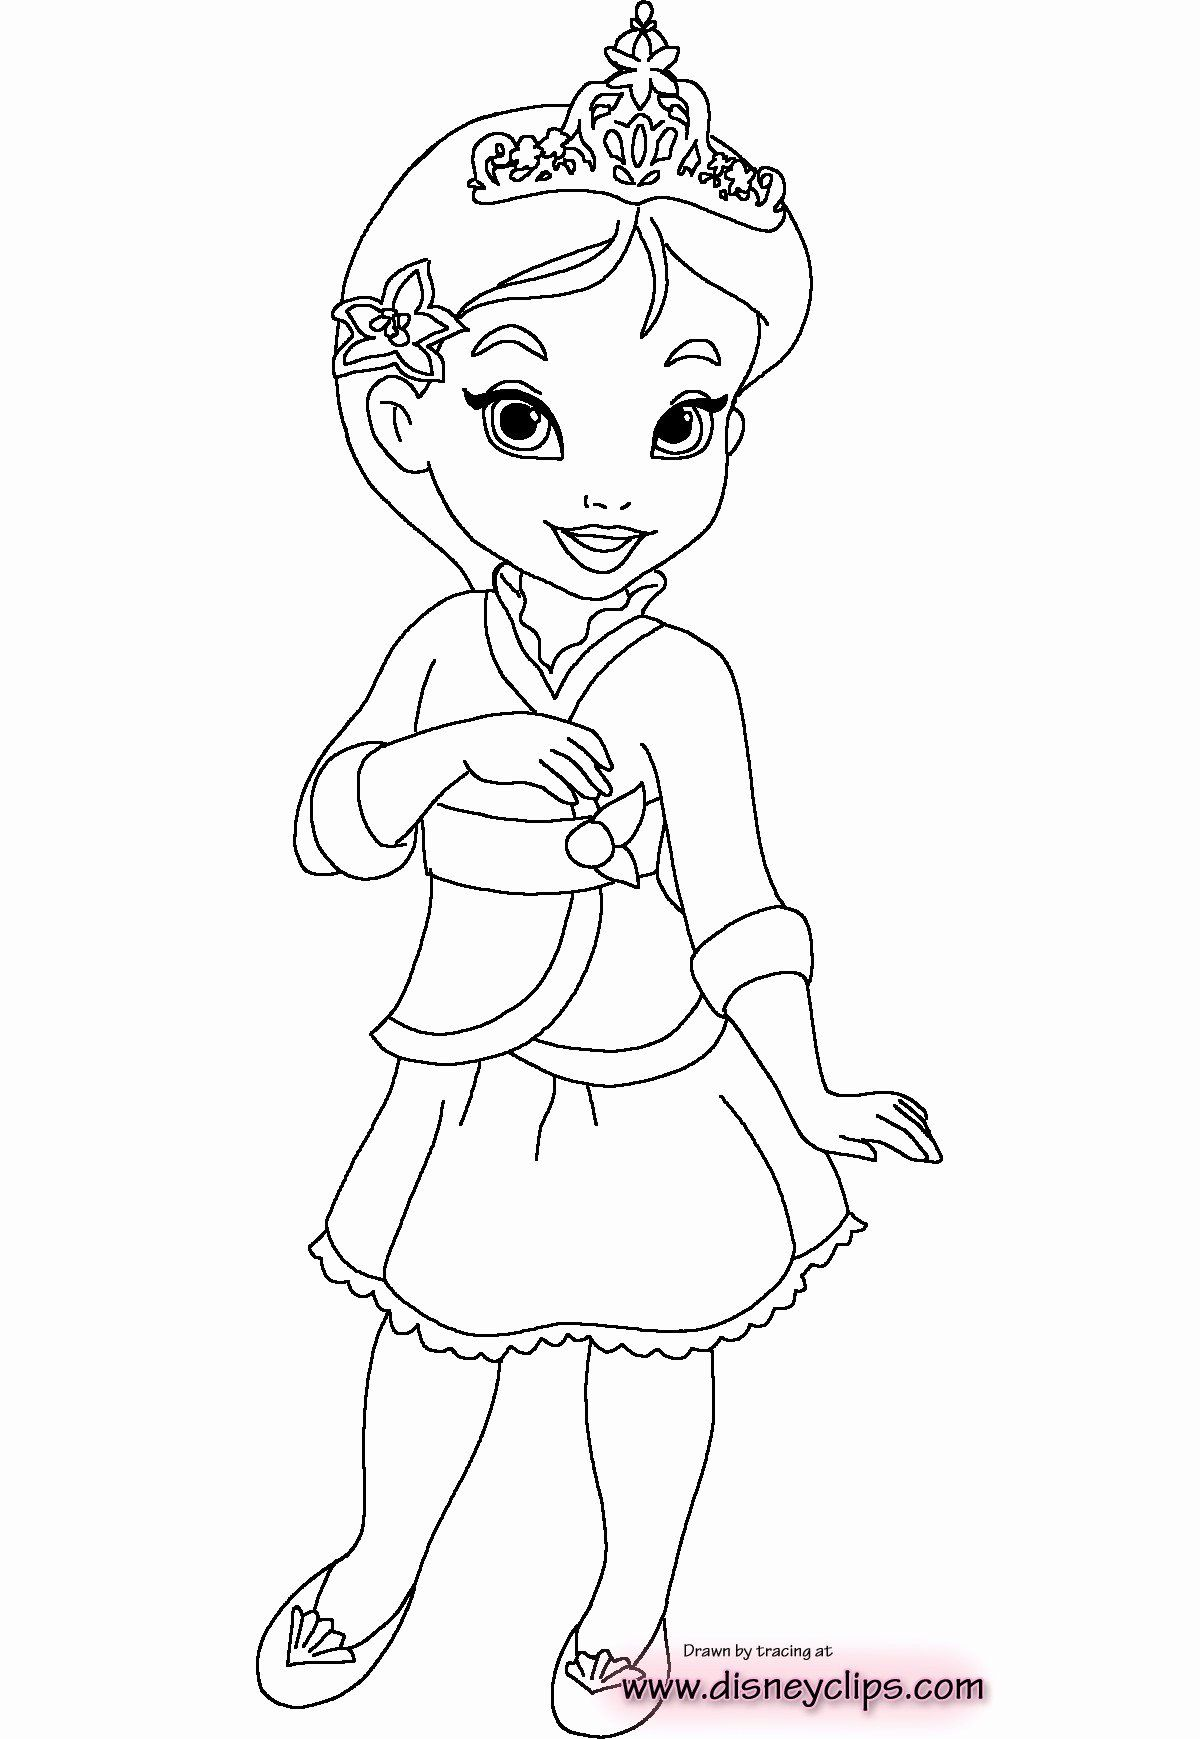 Disney Princess Jasmine Coloring Pages Luxury Disney Baby Princess Coloring Pages Disney Princess Coloring Pages Disney Princess Colors Disney Coloring Pages